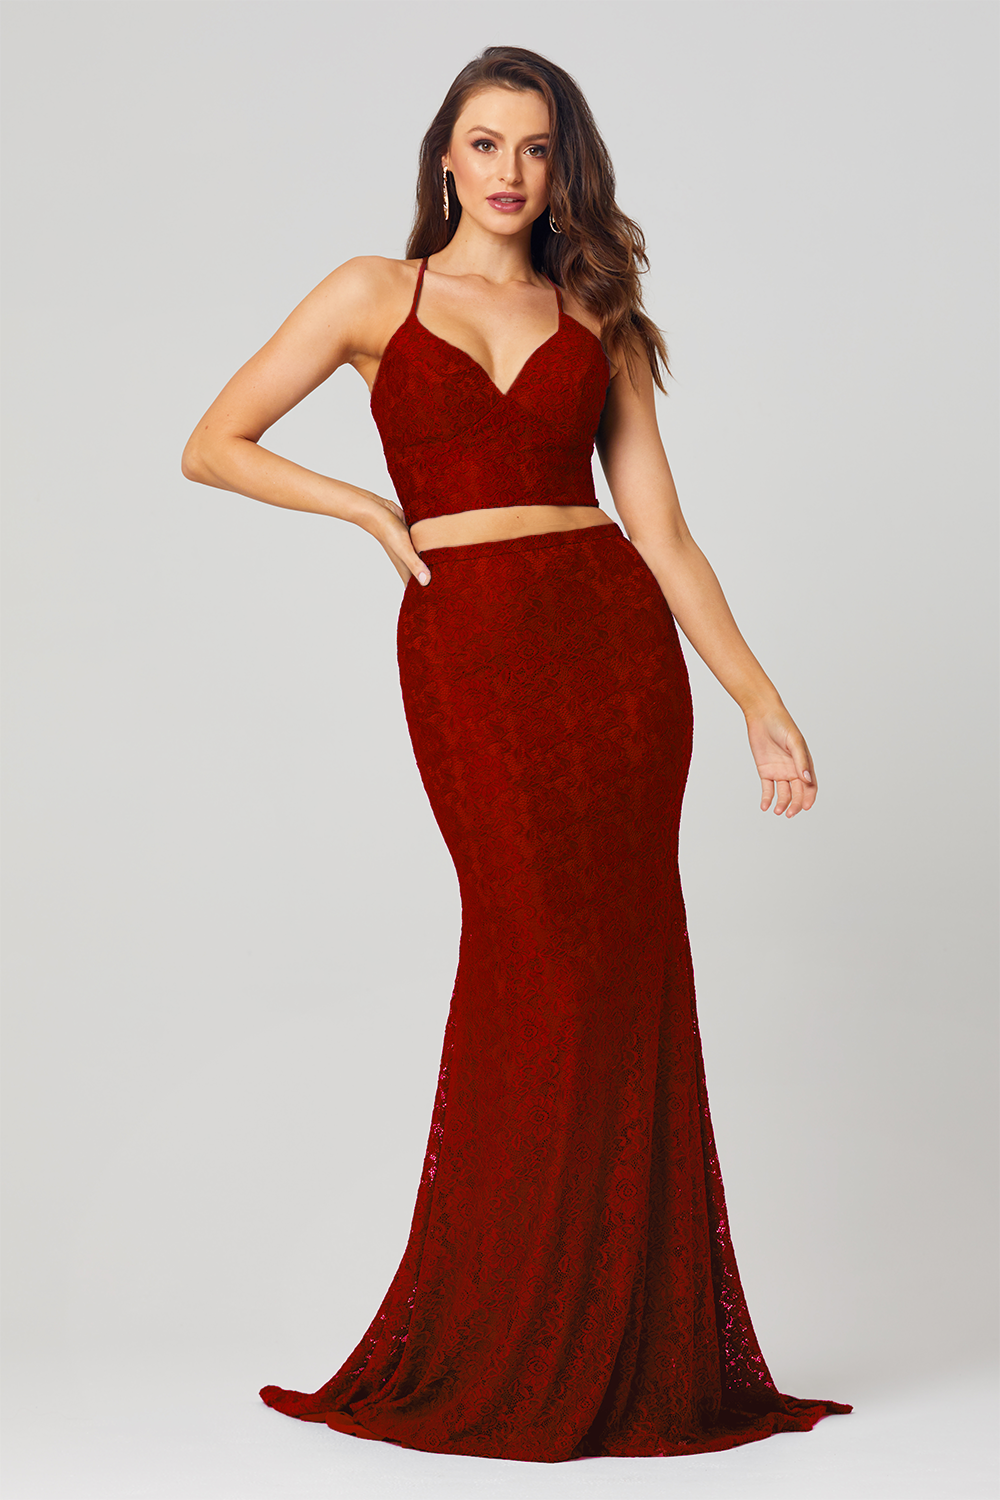 Gabbi Co-Ord Lace Formal Dress – PO813 Red